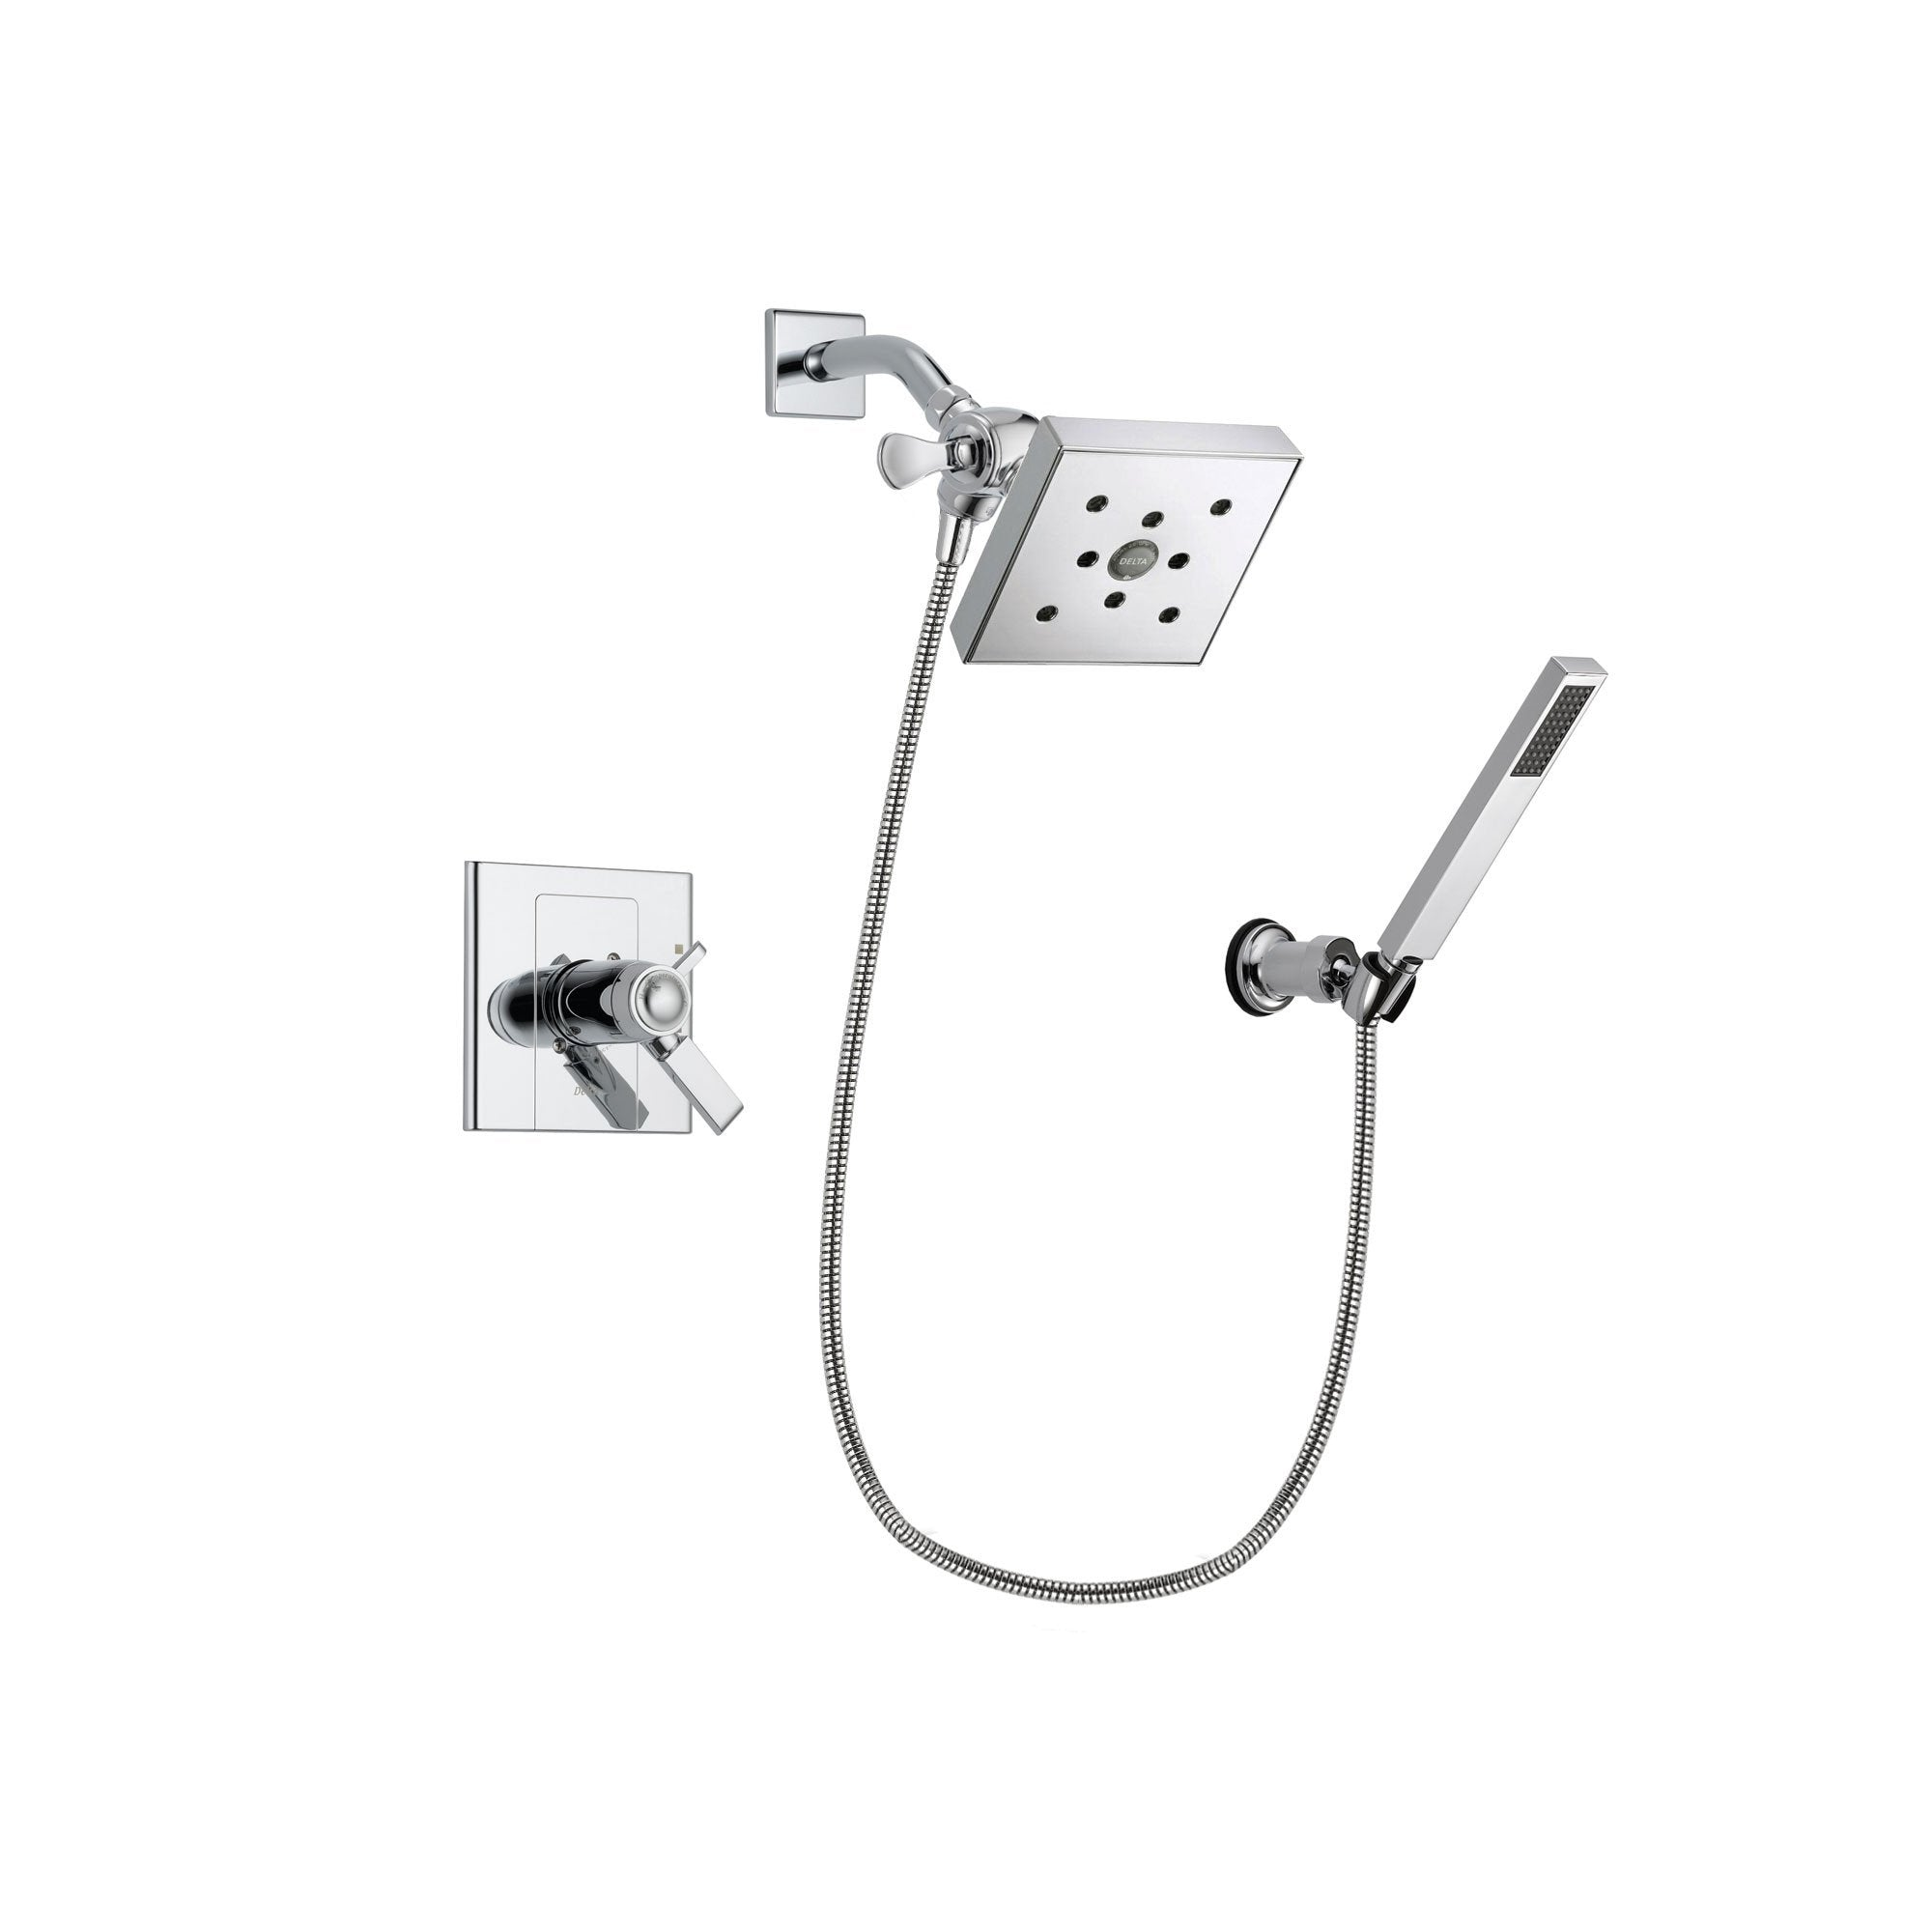 Delta Arzo Chrome Finish Thermostatic Shower Faucet System Package with Square Shower Head and Modern Handheld Shower Spray with Wall Bracket and Hose Includes Rough-in Valve DSP0133V